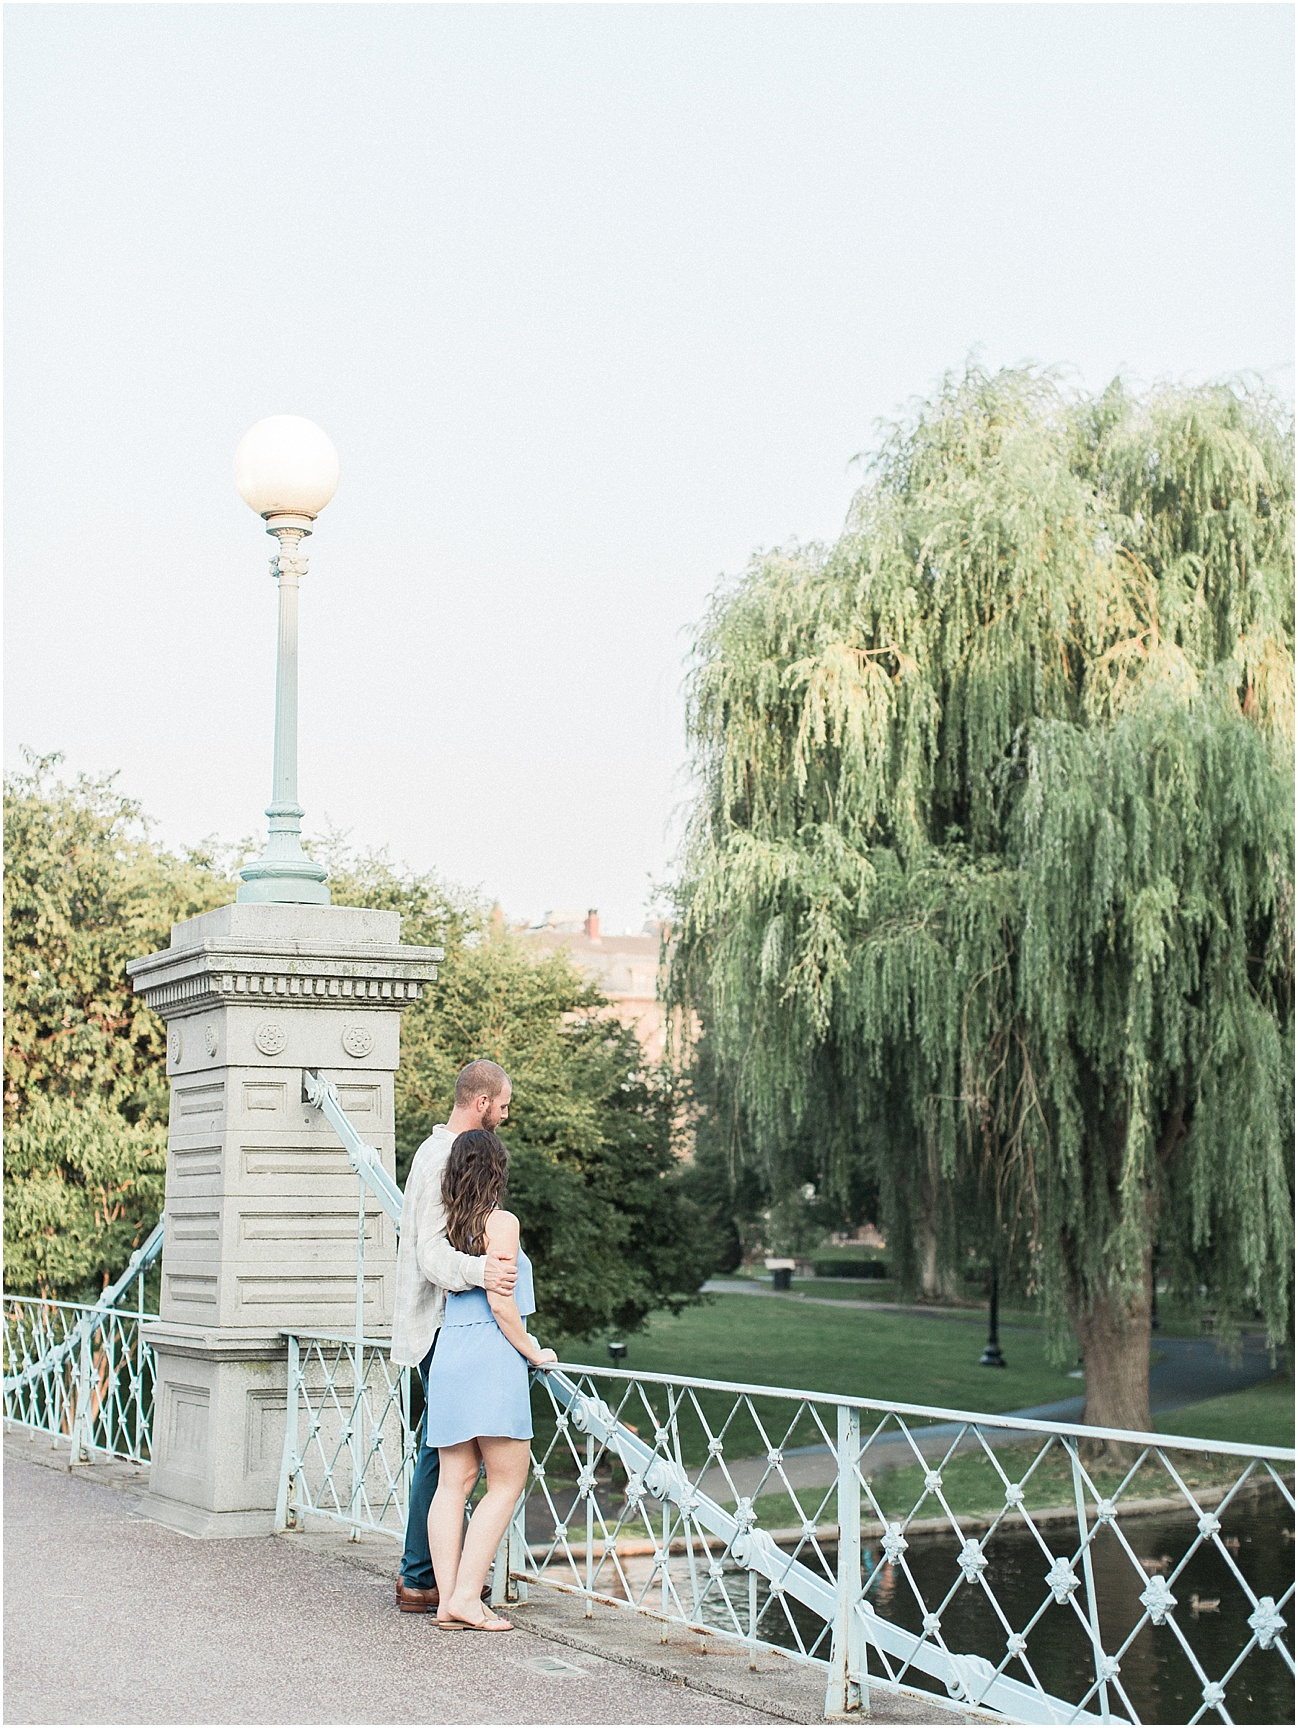 christina_frank_common_engagement_acorn_street_back_bay_cape_cod_boston_wedding_photographer_meredith_jane_photography_photo_0713.jpg